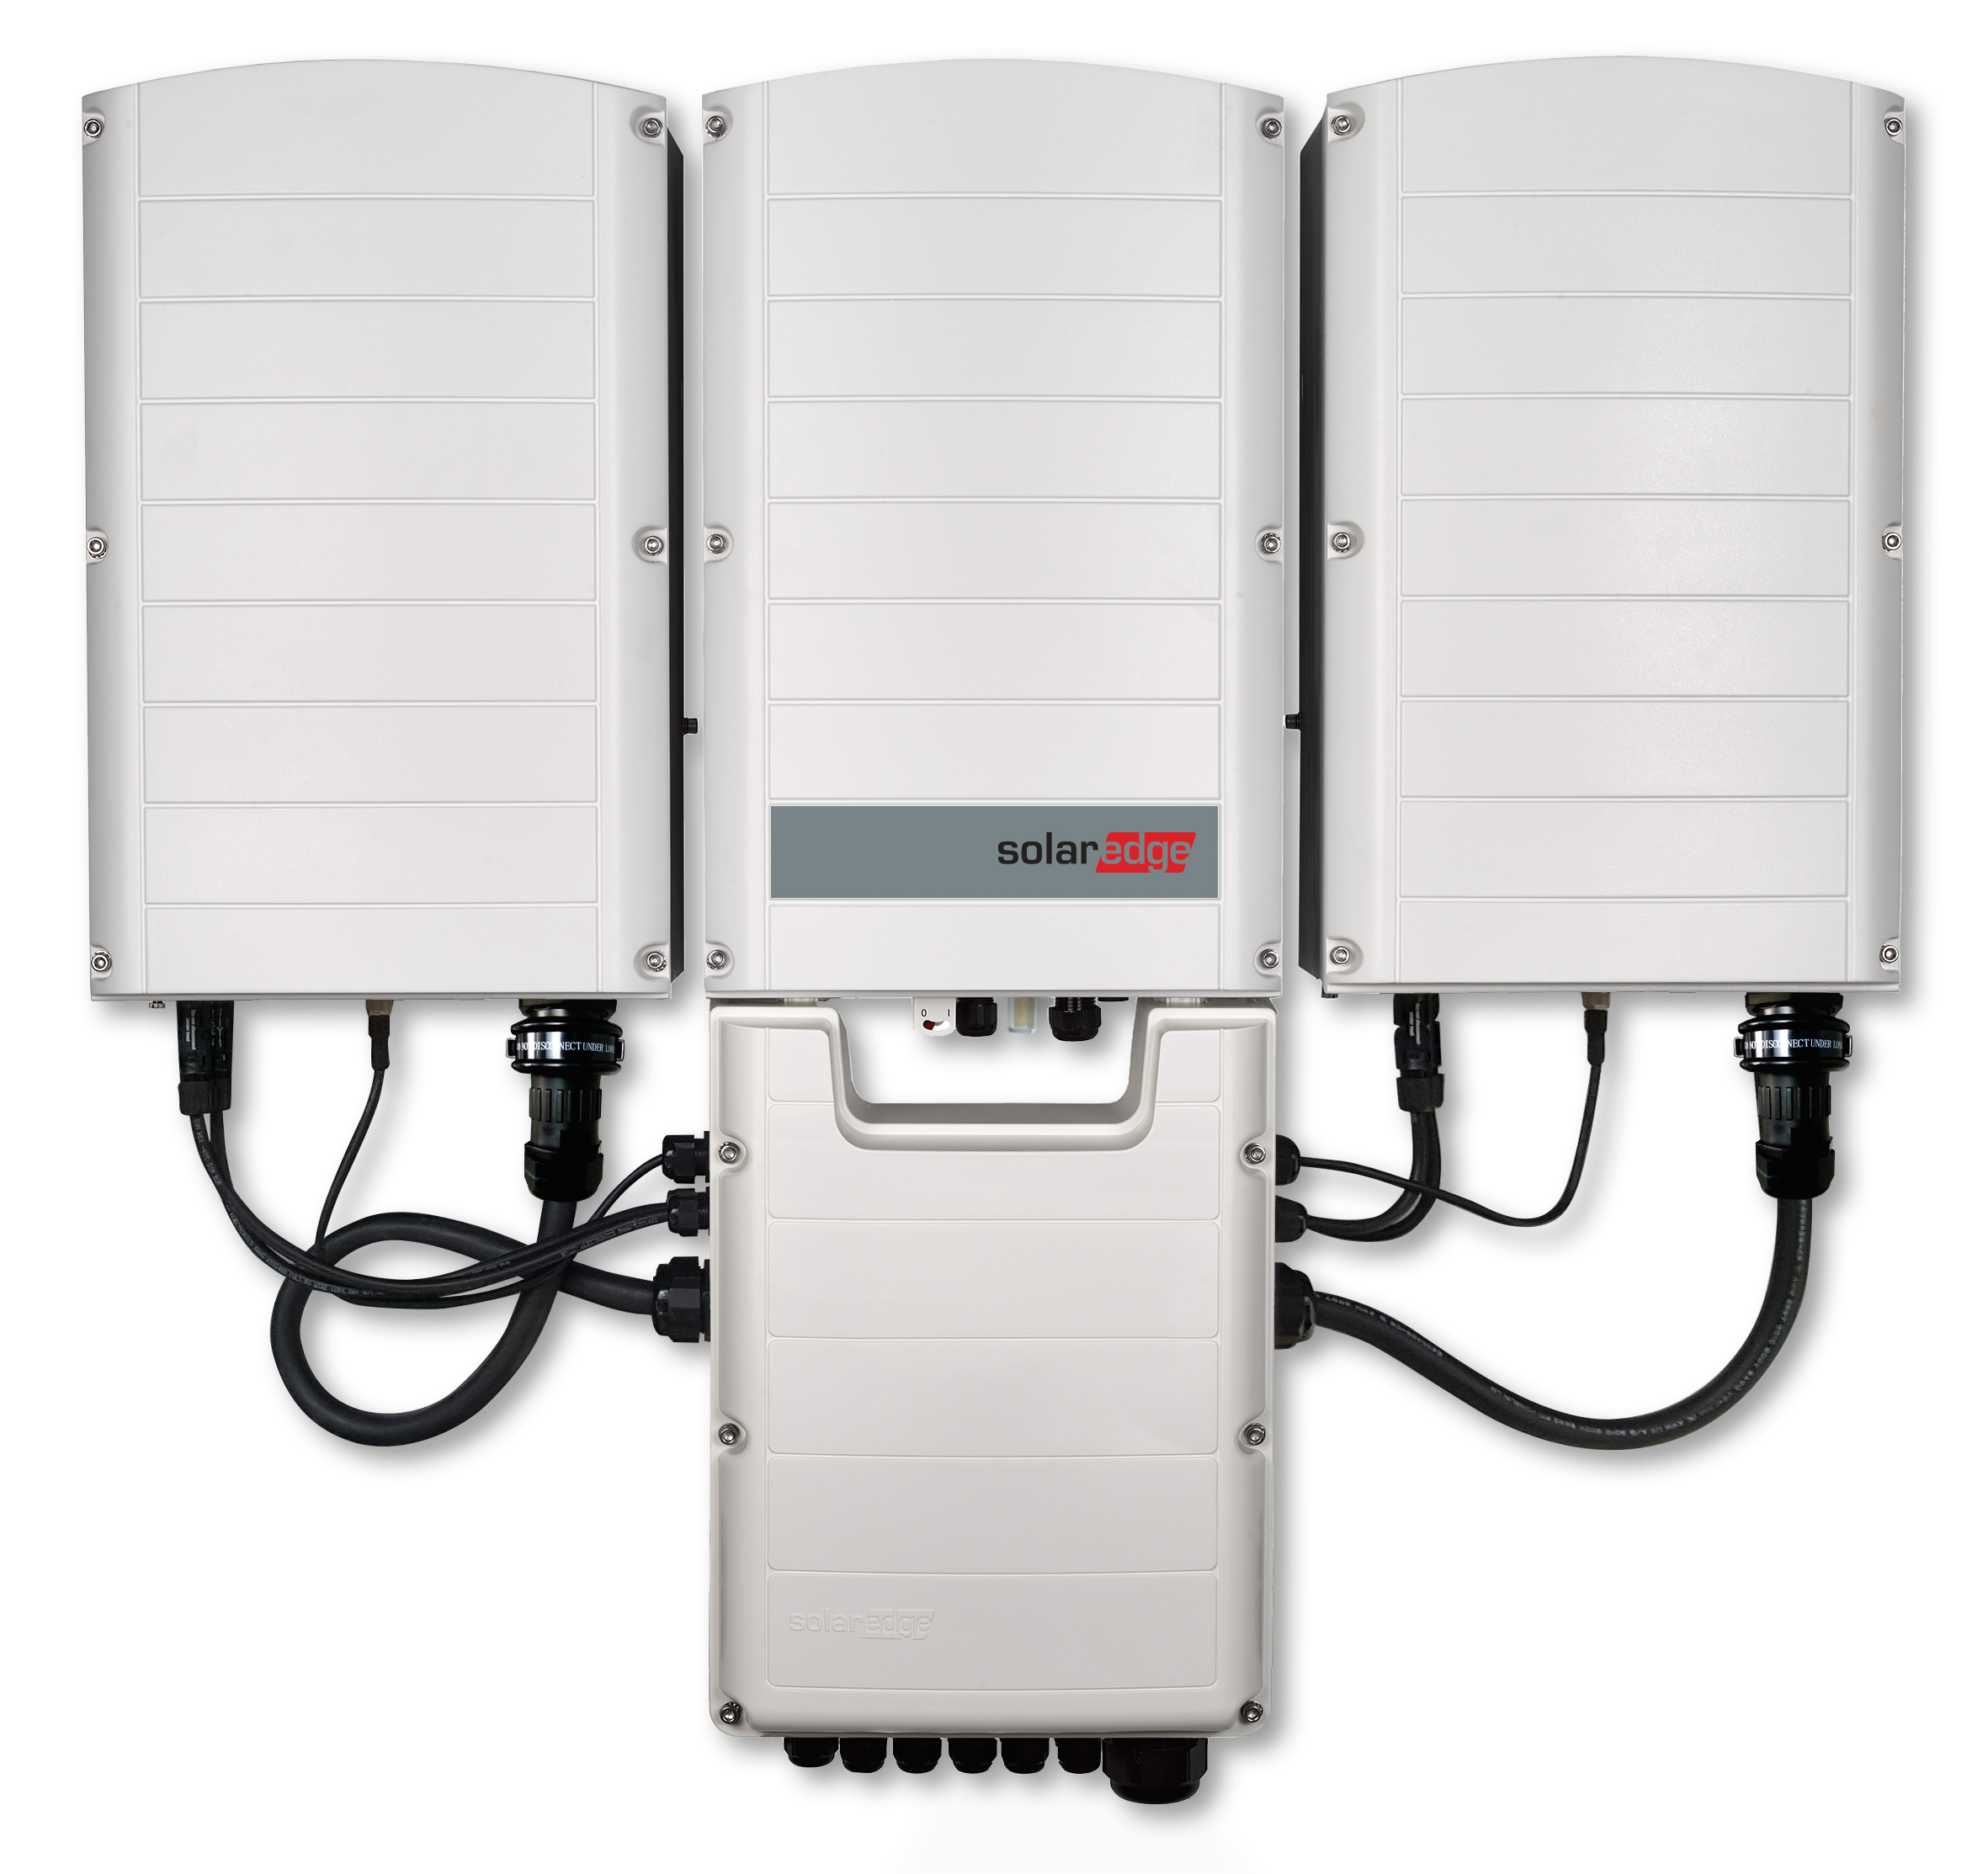 SolarEdge is therefore increasing the capacity of its three-phase inverters by 20% to now include 33kW and 40kW, while the range of its three-phase inverters with synergy technology will now reach up to 120kW, according to the company. Image: SolarEdge